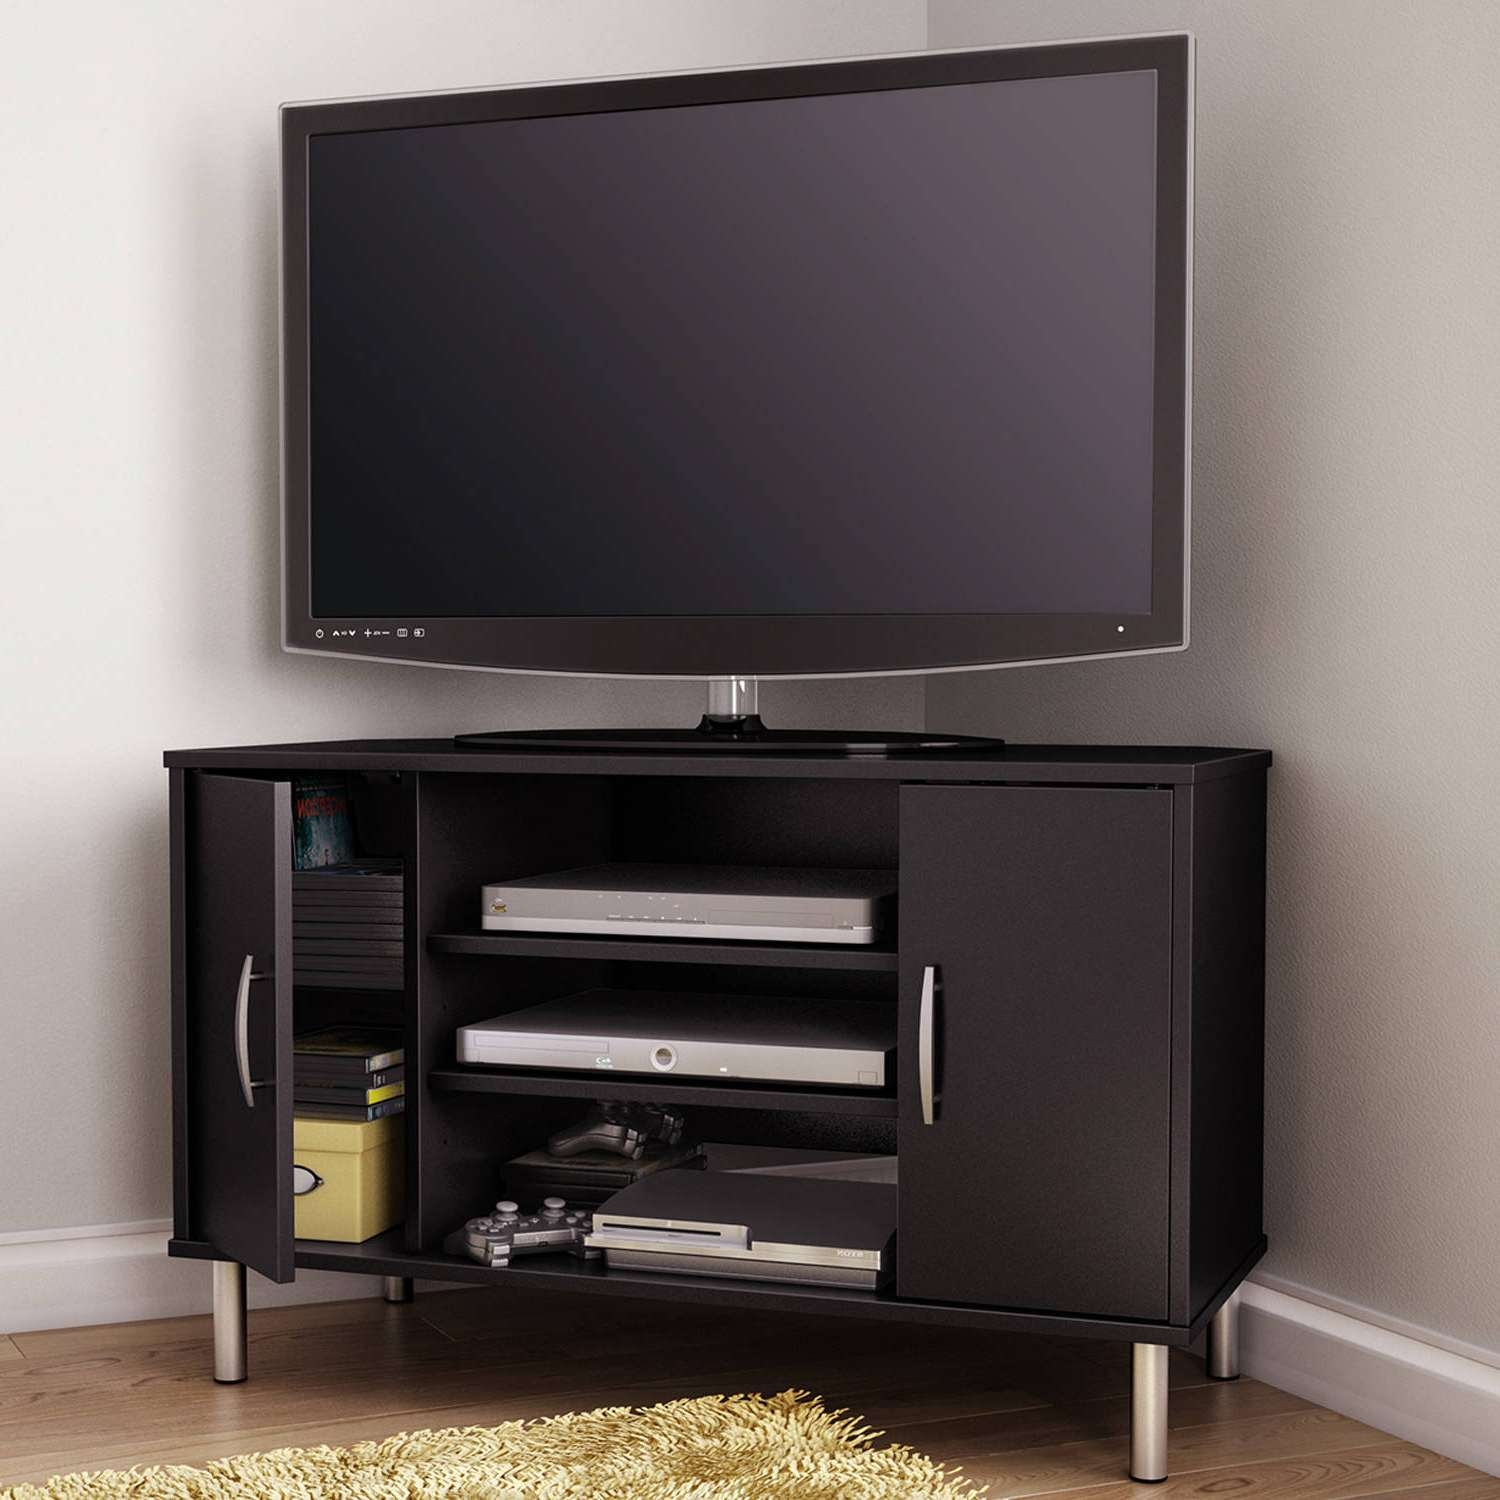 Corner Tv Stands For Flat Screen Tvs Regarding Glass Corner Tv Stands For Flat Screen Tvs (View 3 of 15)